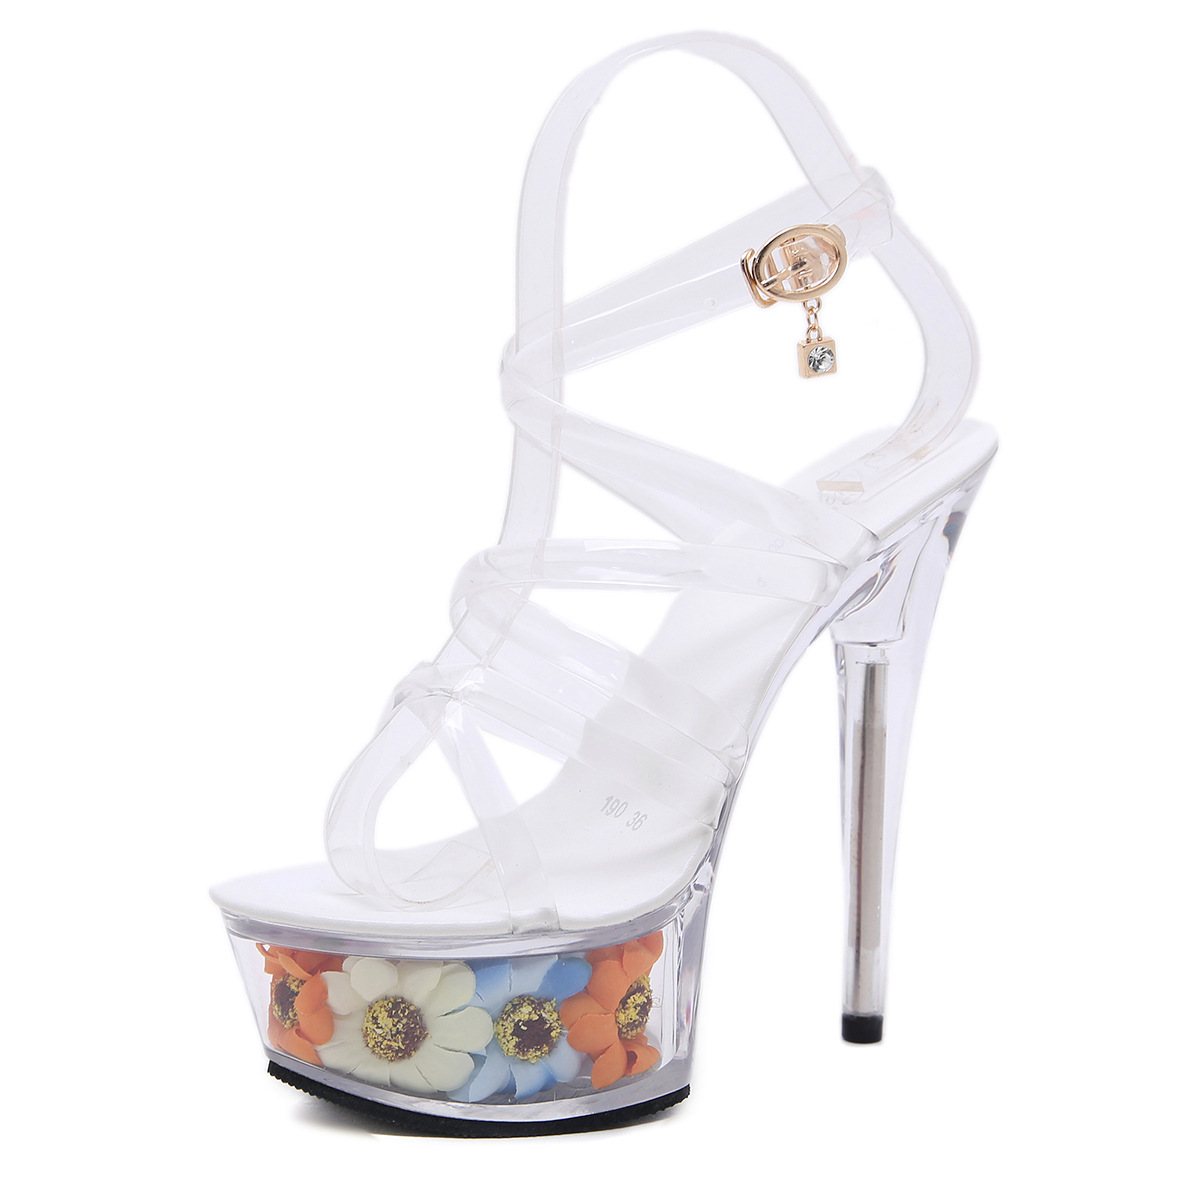 Gladiator High Heels Sandals Peep Toe Clear Heels Women Summer Transparent Shoes Flower Fashion Ladies Party Platform Sandals